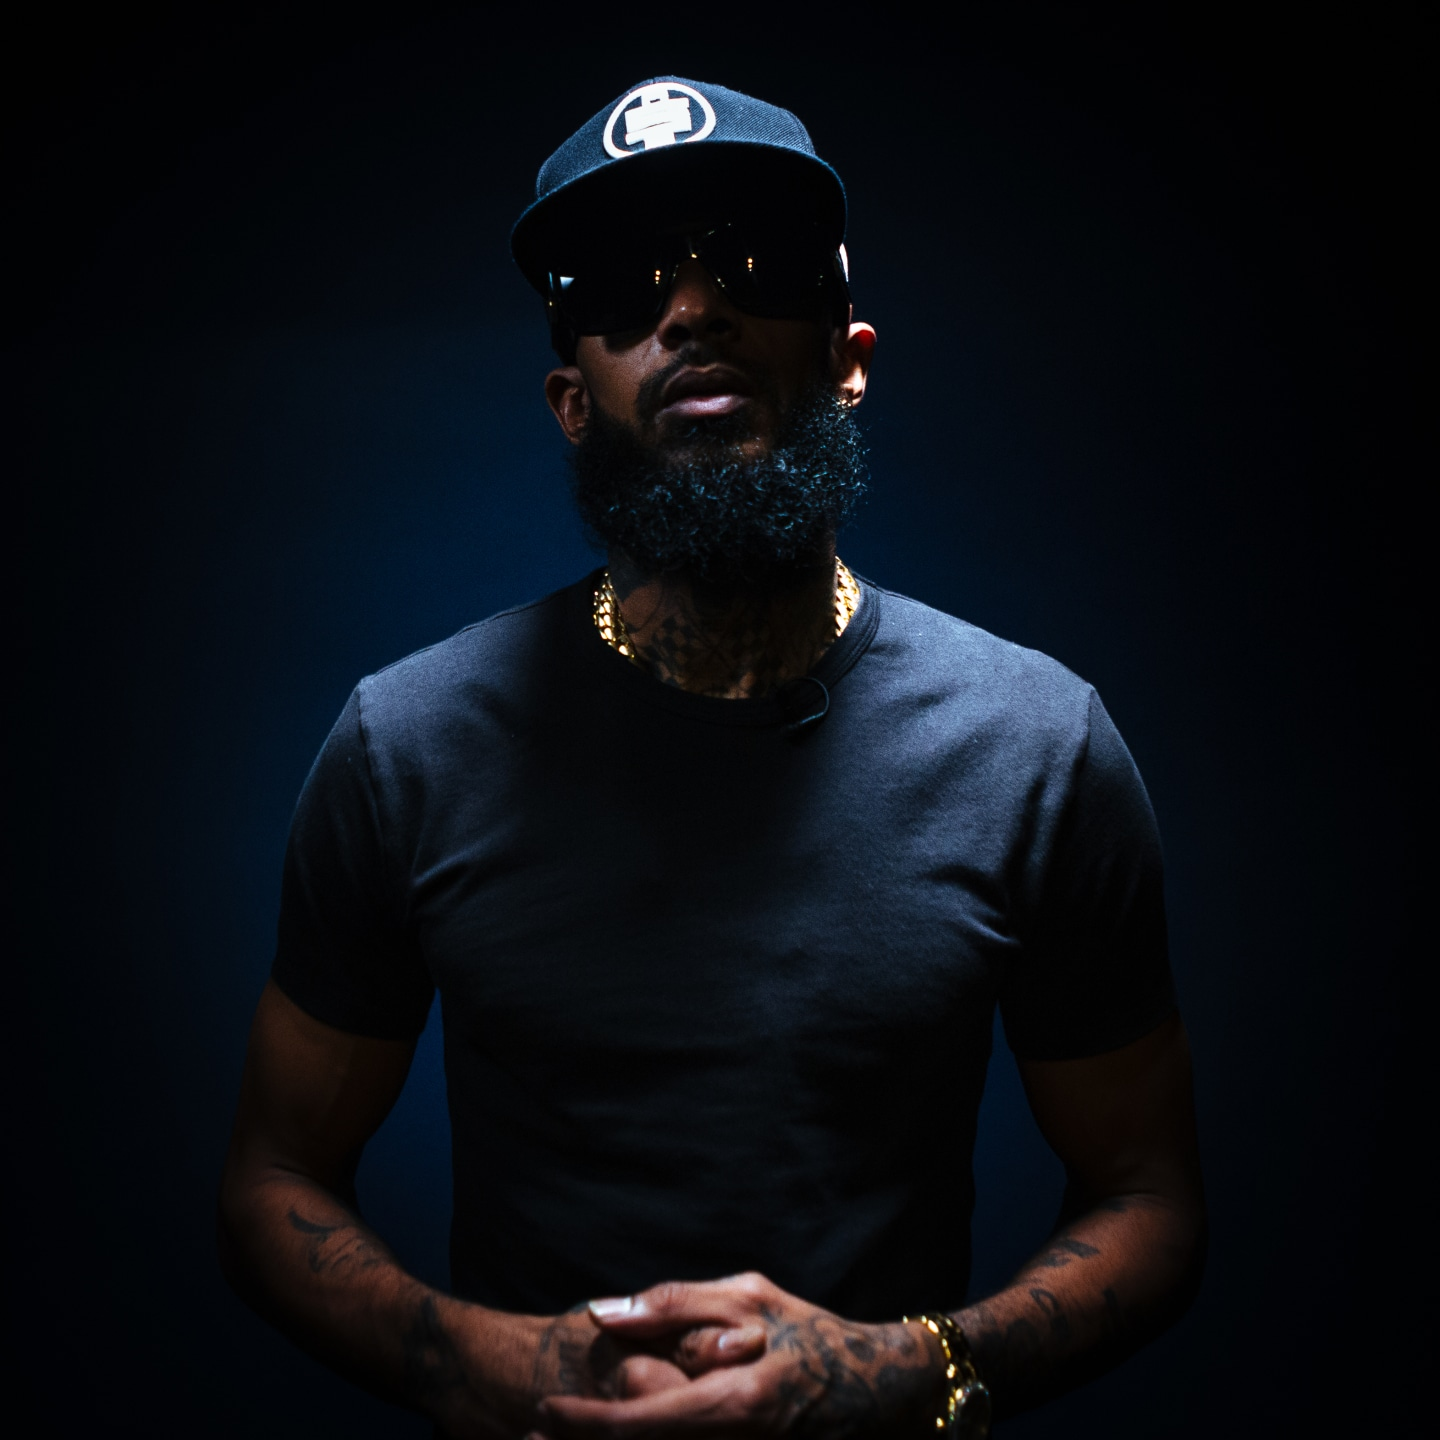 Nipsey Hussle is making major label moves with an independent spirit